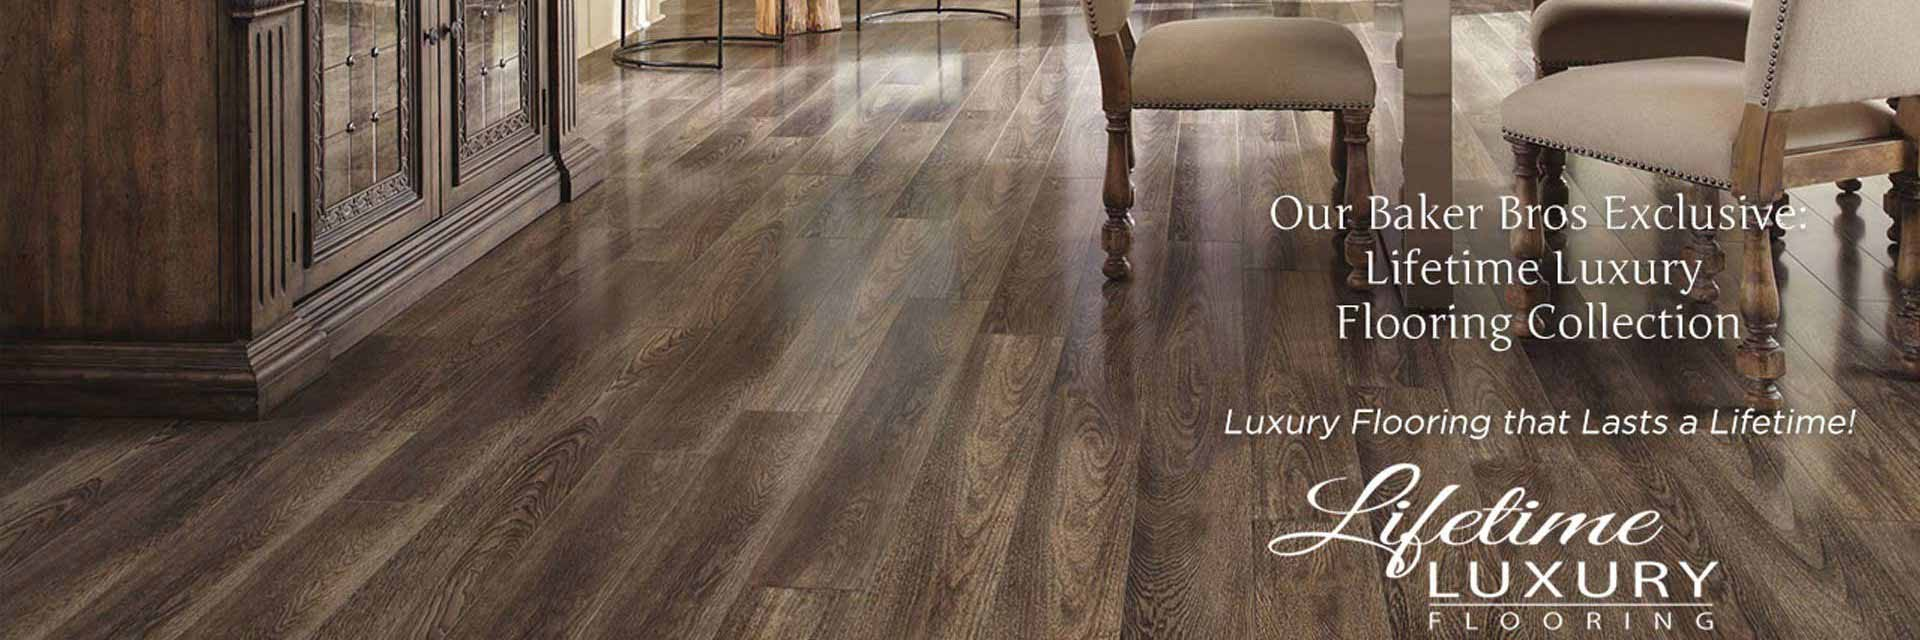 Baker bros flooring phoenix scottsdale chandler gilbert mesa try it before you buy it dailygadgetfo Images